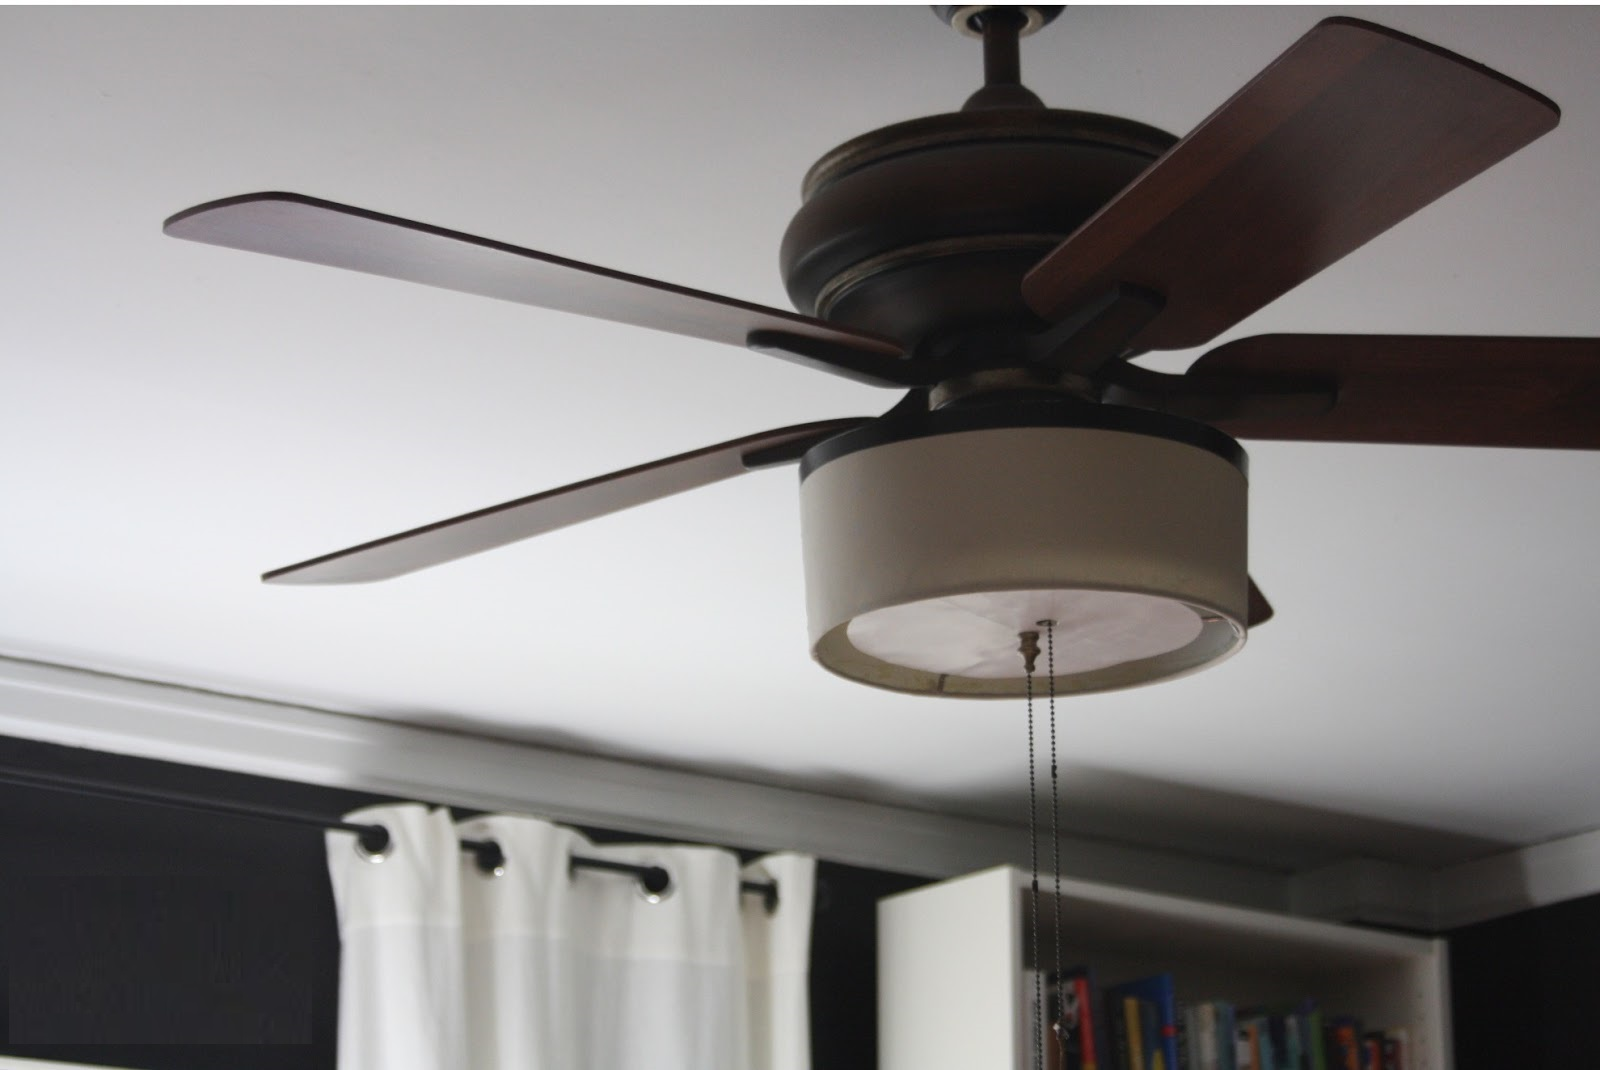 Diy ceiling fan blades 10 tips for beginners warisan - What size fan should i get for my bedroom ...